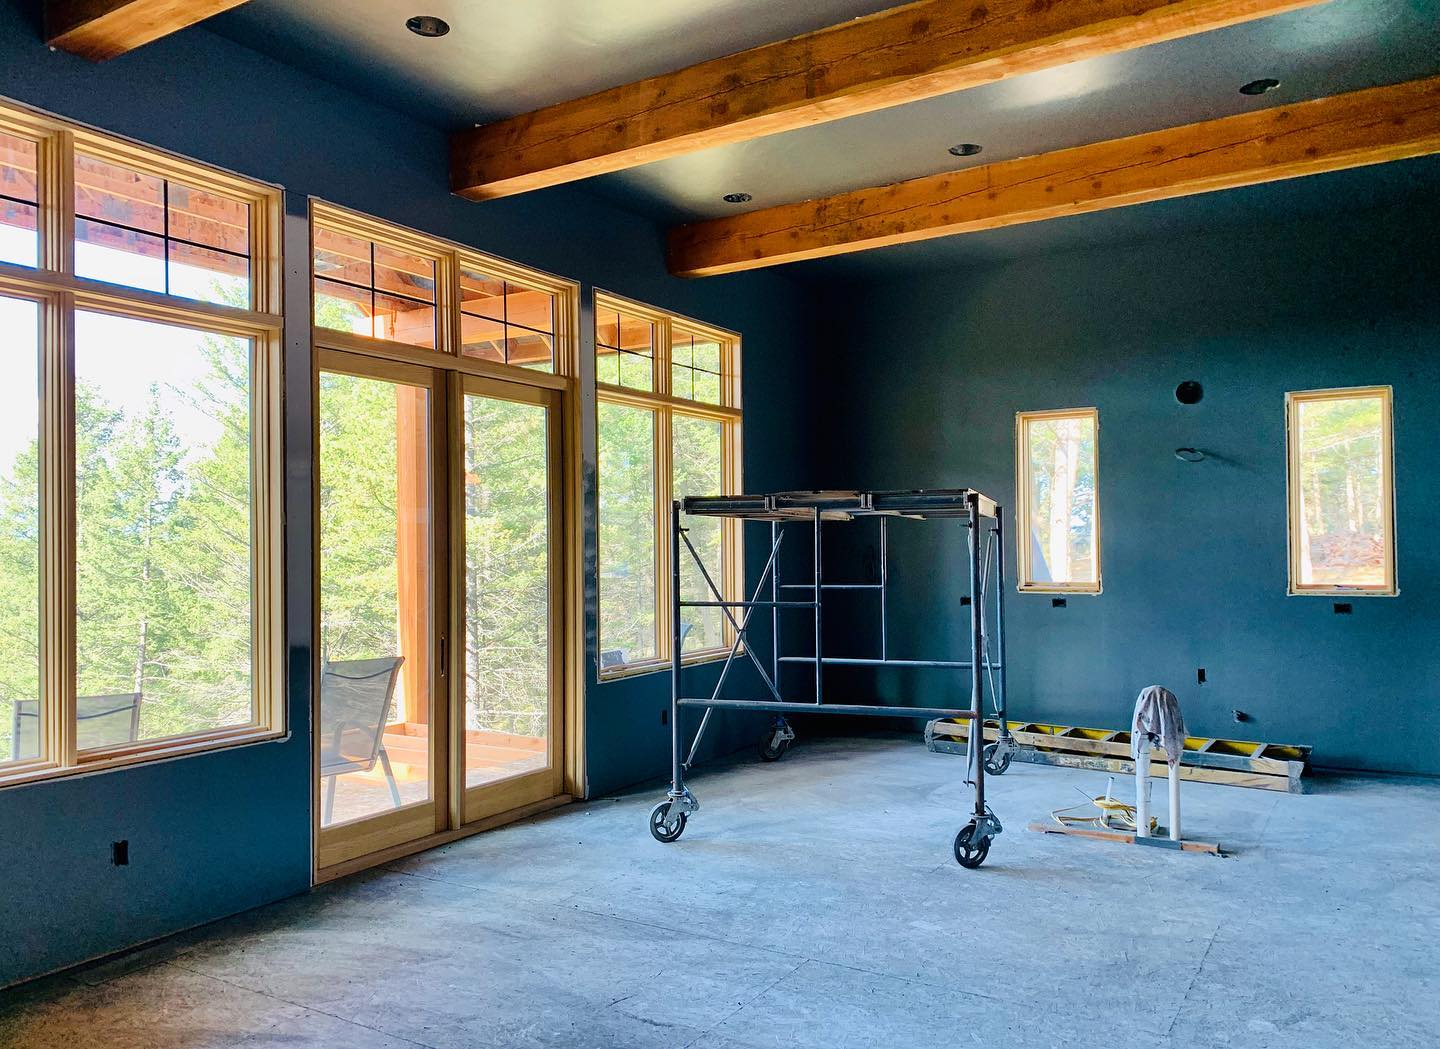 I'm loving this super rich color pallet. Going this dark in your main living space is bold, but it's going to set everything around it off like a work of art! whitefish custom home builder